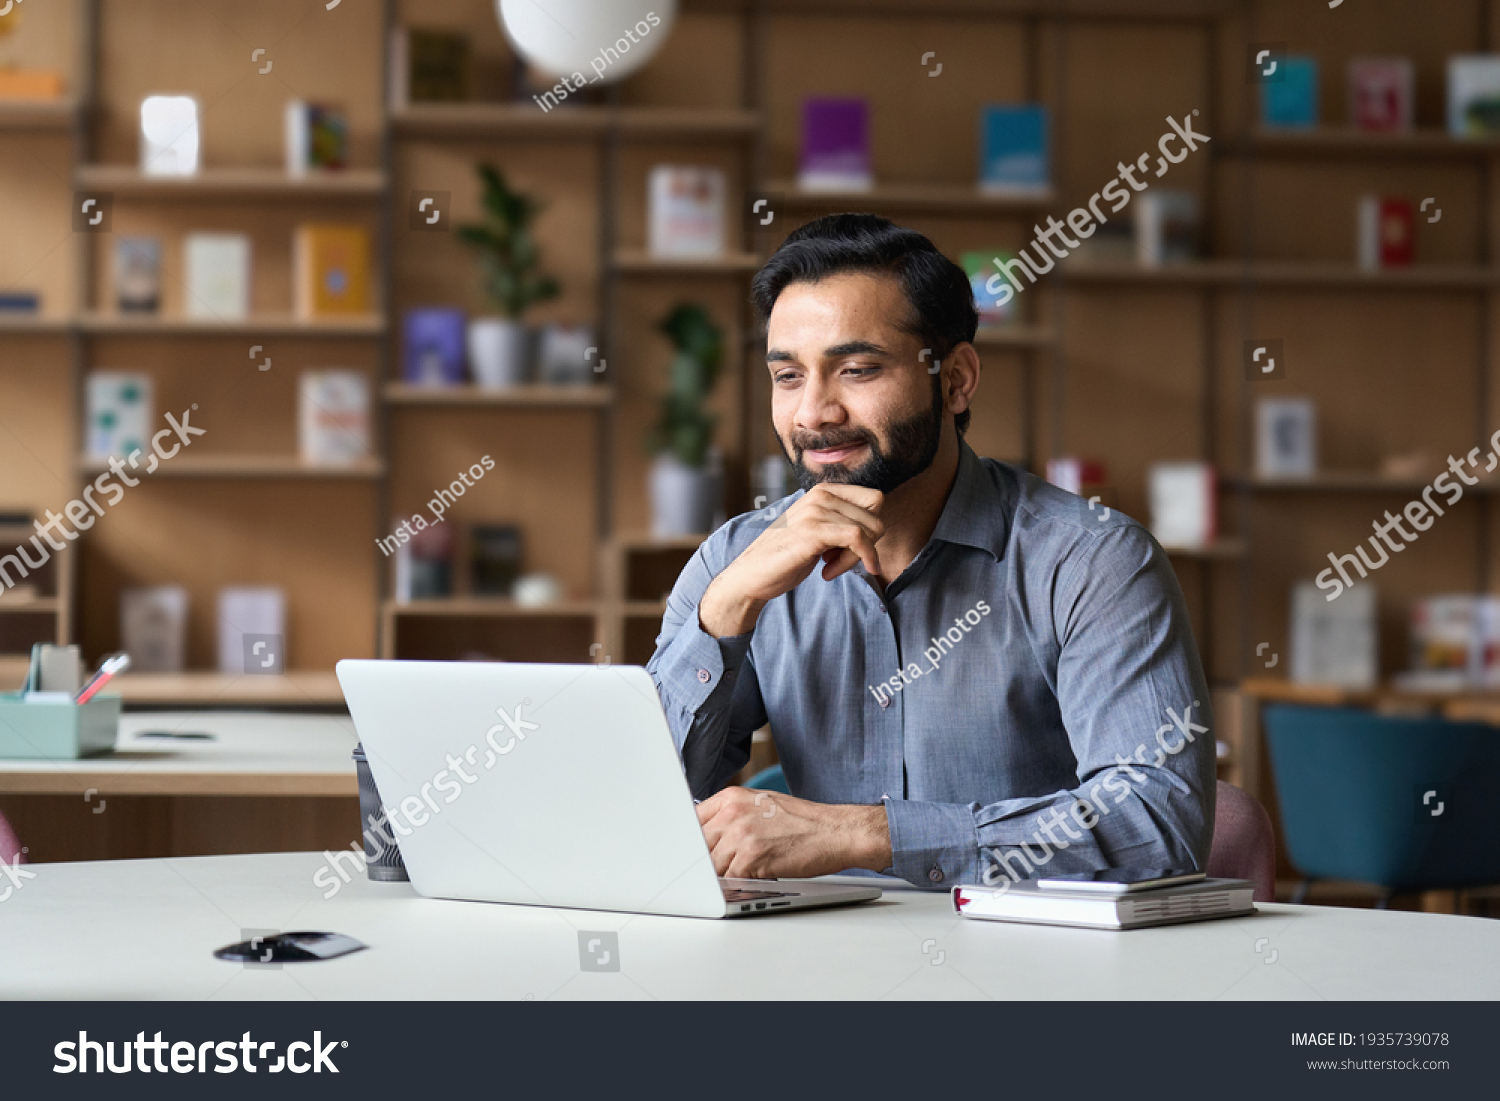 Smiling indian businessman working on laptop in modern office lobby space. Young indian student using computer remote studying, watching online webinar, zoom virtual training on video call meeting. #1935739078